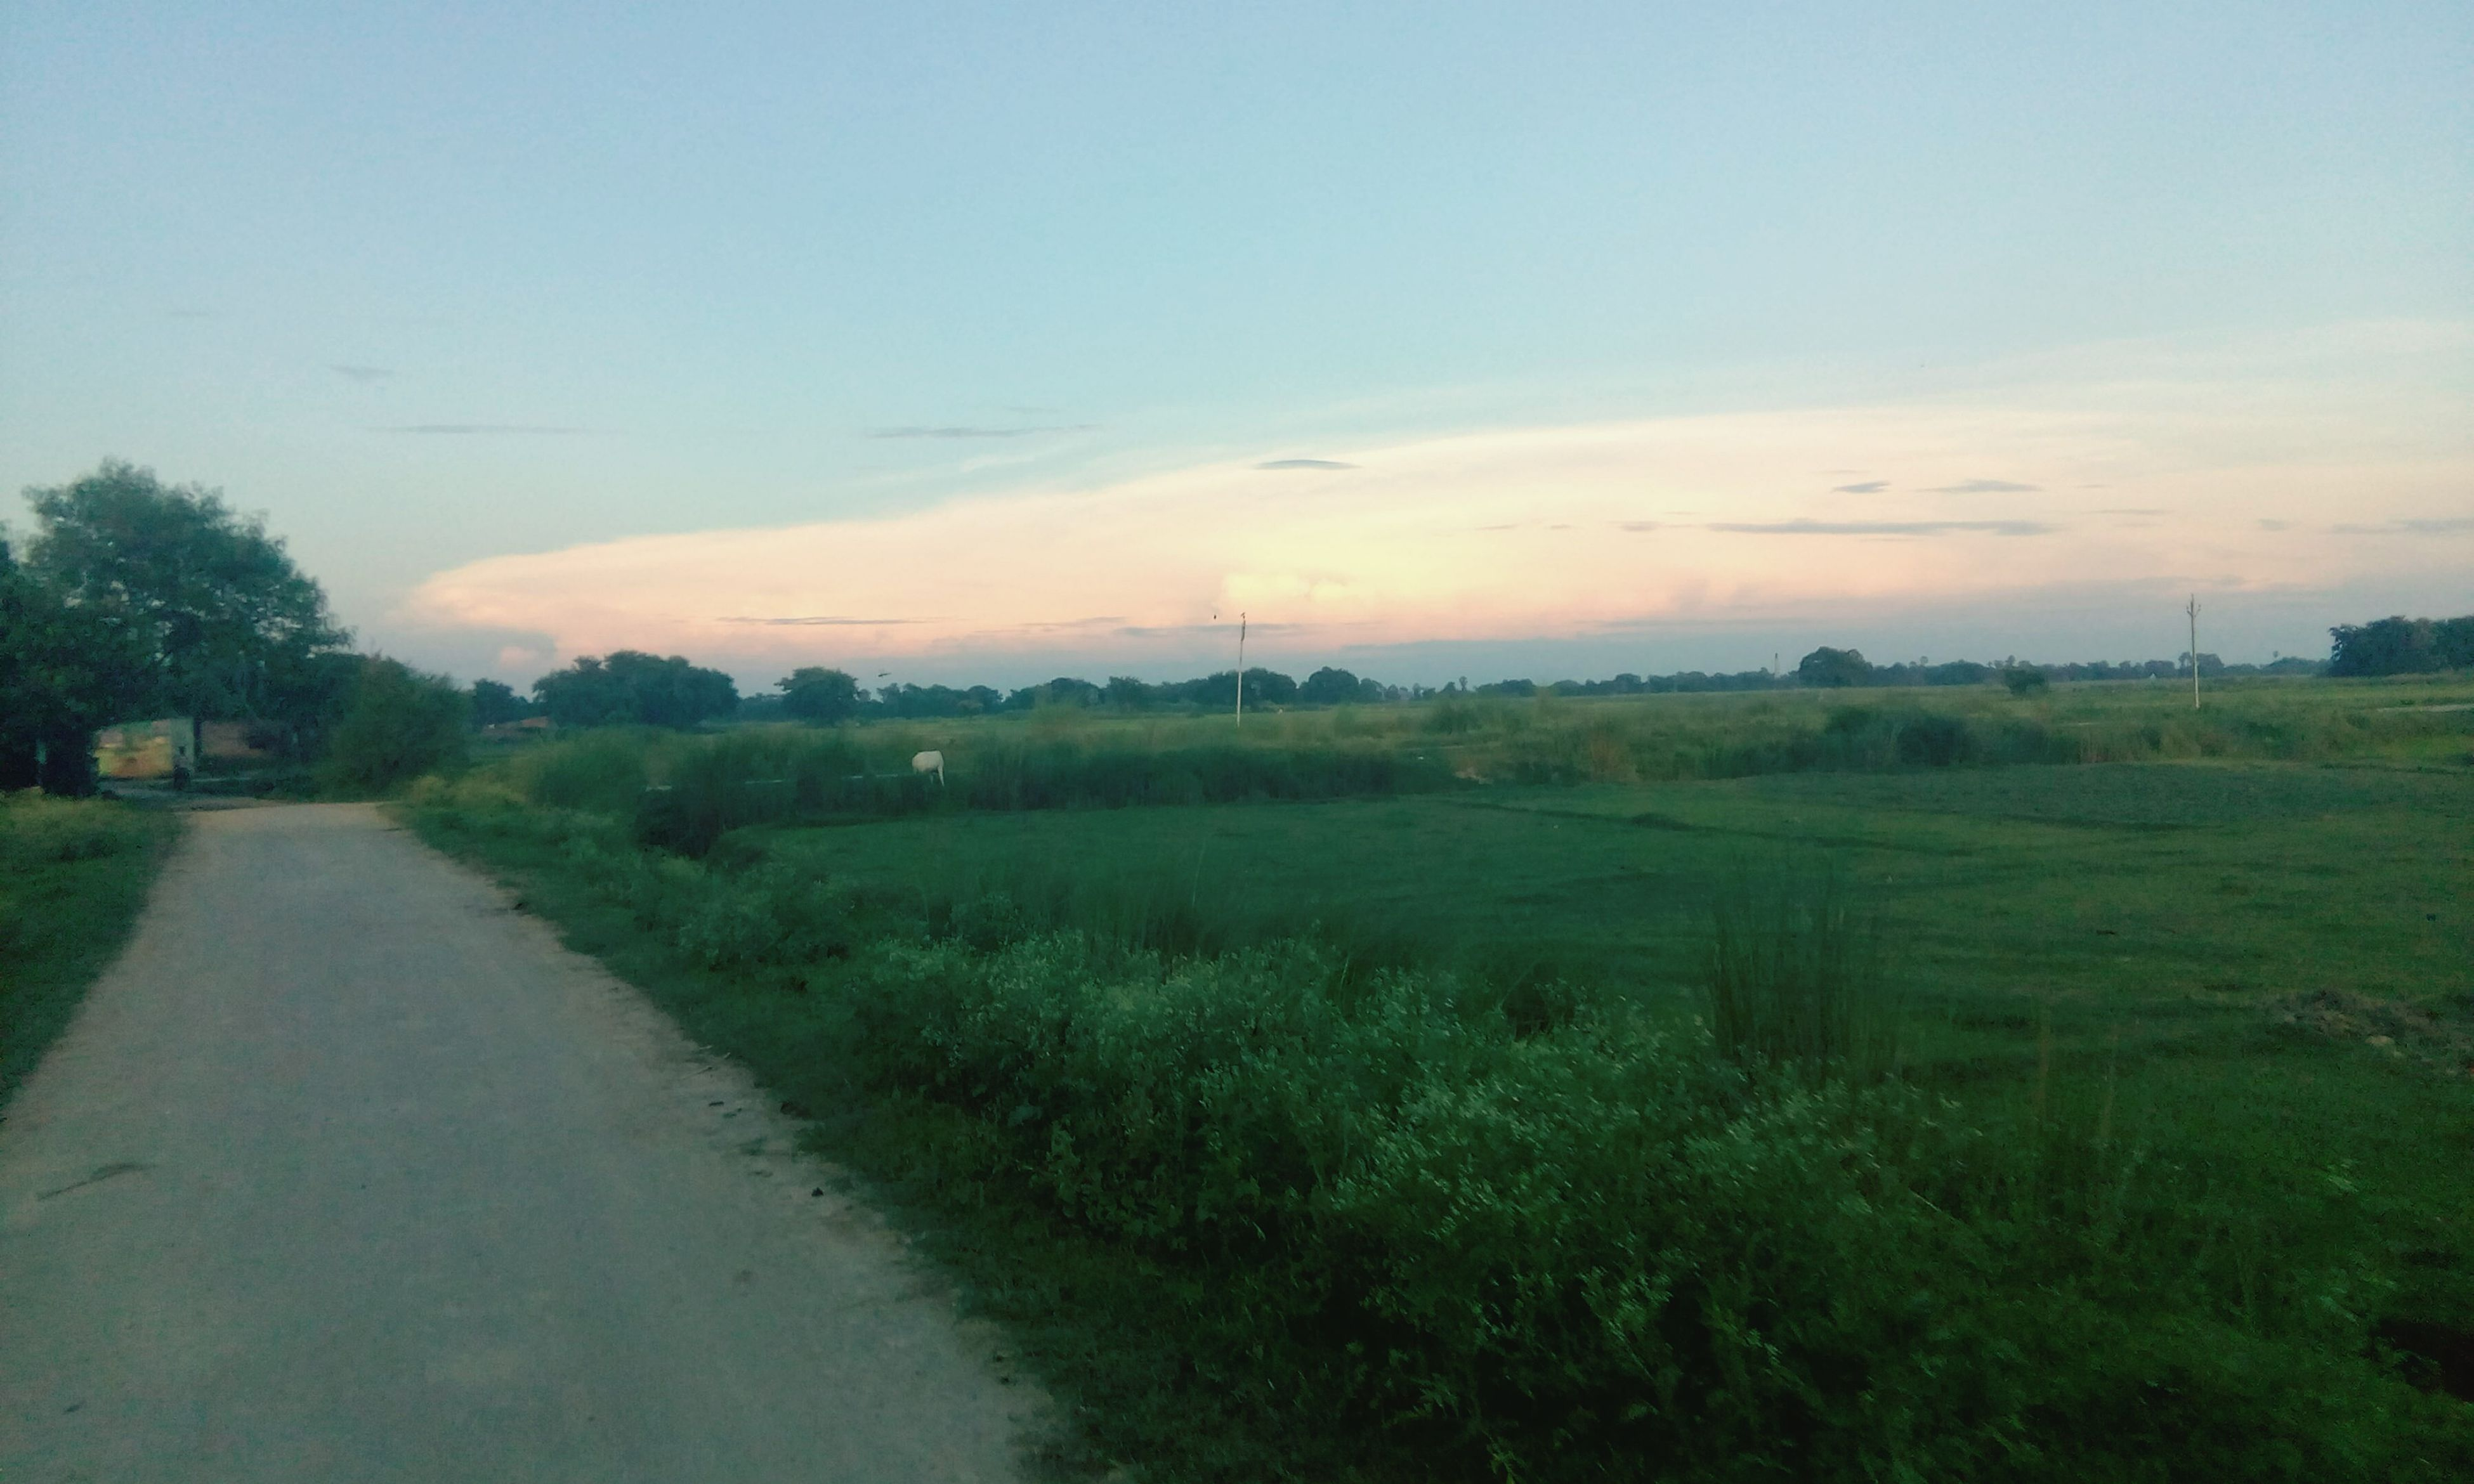 sky, grass, tranquil scene, landscape, tranquility, the way forward, field, scenics, nature, beauty in nature, cloud, growth, cloud - sky, diminishing perspective, grassy, outdoors, day, green color, non-urban scene, no people, solitude, remote